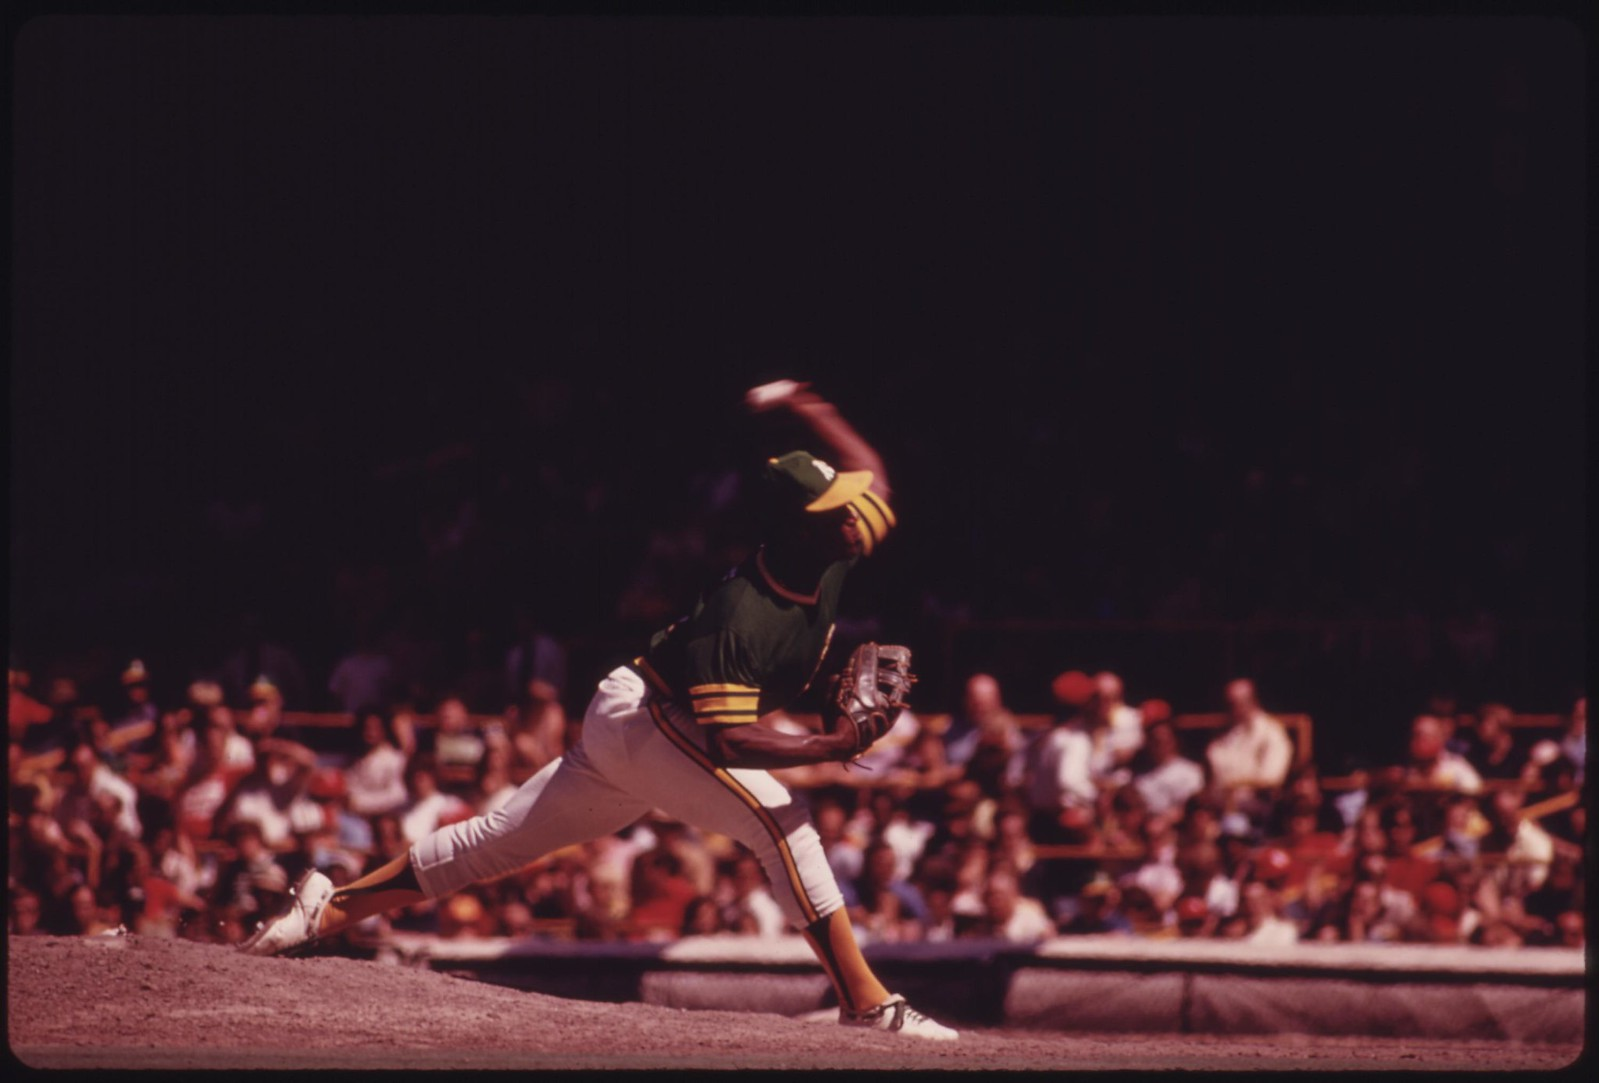 An Oakland A's Pitcher Delivers During A Game With The Home Team Chicago Cubs At Wrigley Field, 07/1973 | by The U.S. National Archives